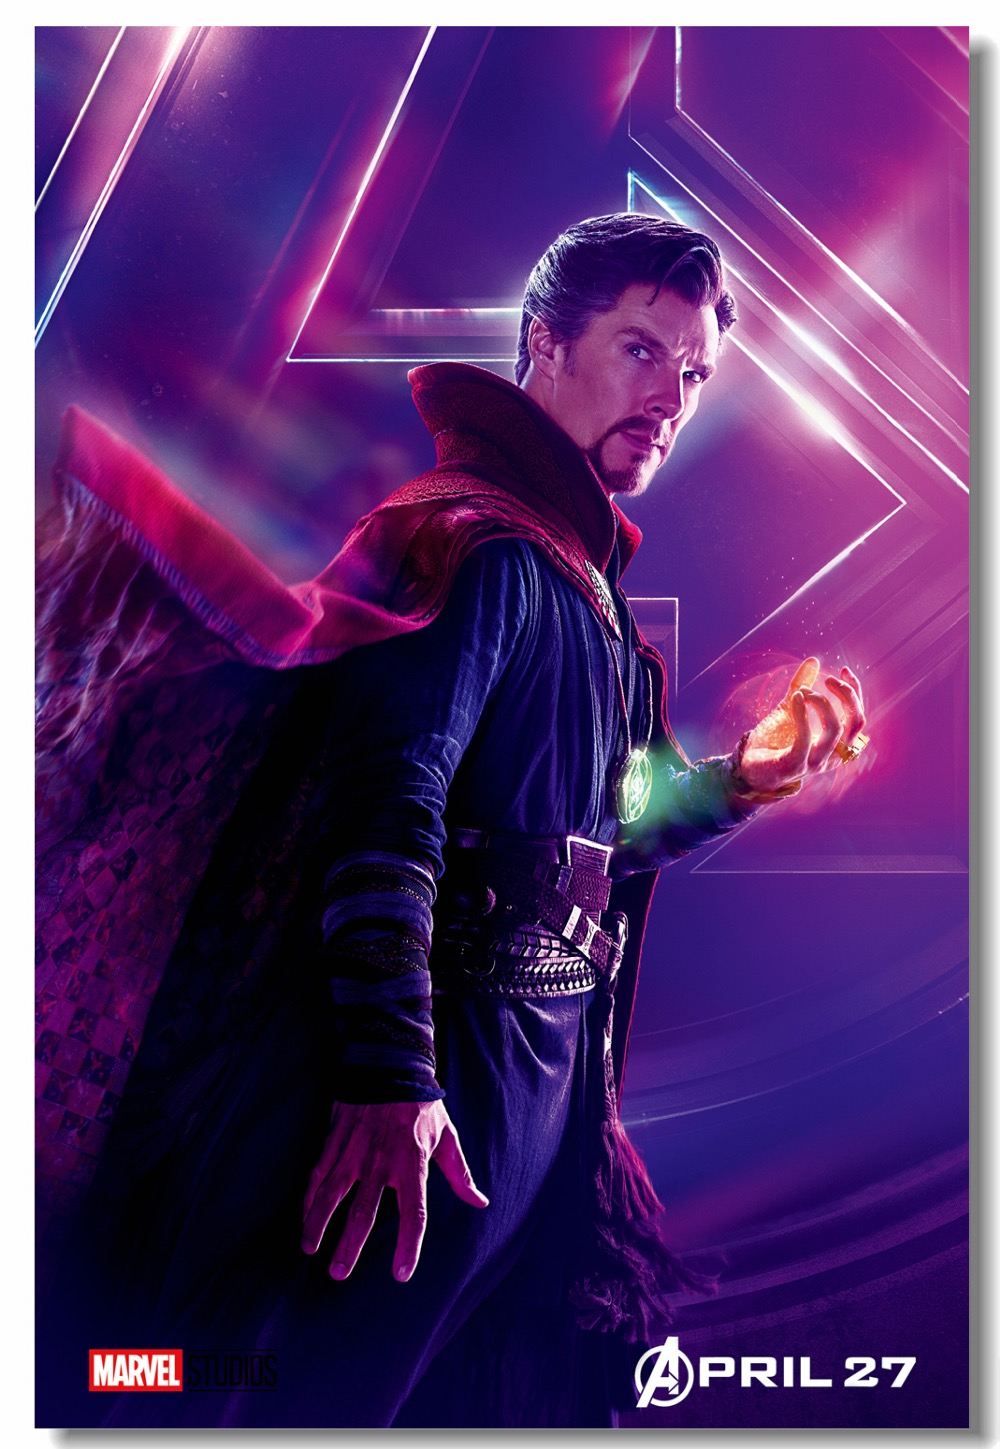 Us 575 28 Offcustom Canvas Wall Decal Marvel Superheroes Doctor Strange Poster Avengers Infinity War Wallpaper Star Lord Sticker Mural 0337 In